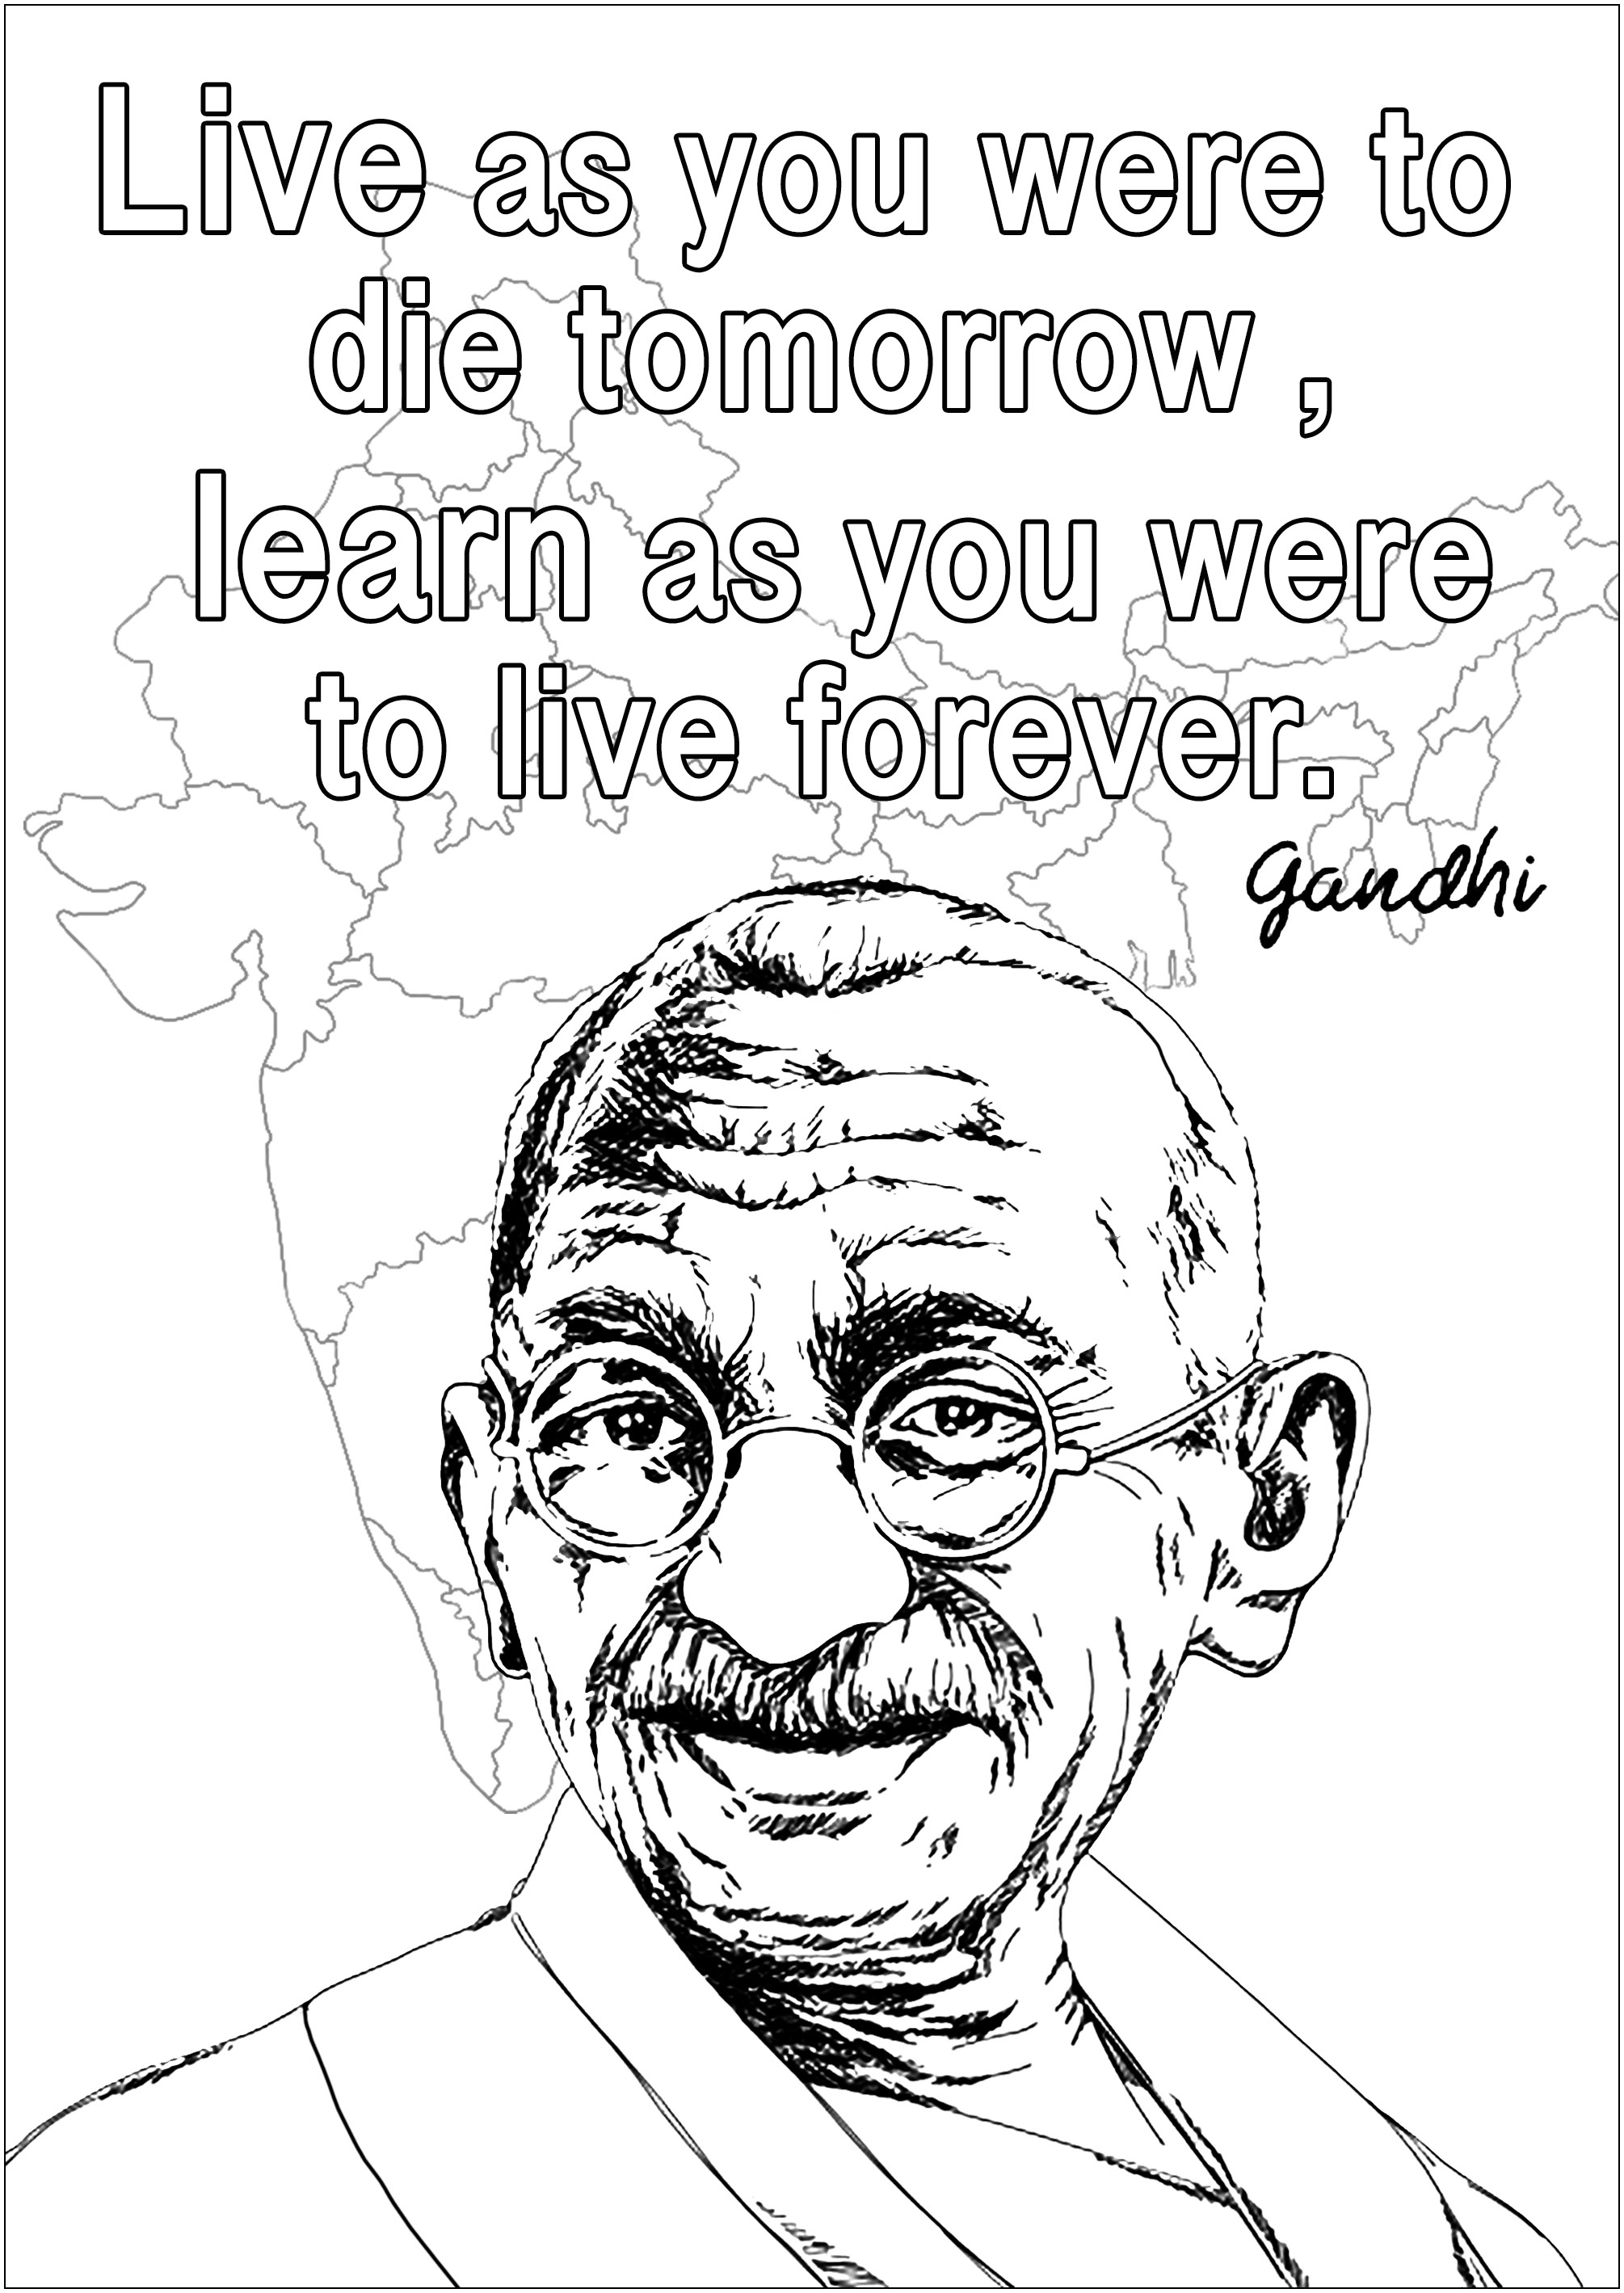 Coloriage d'un portrait de Gandhi avec une de ses citations en anglais : 'Live as if you were to die tomorrow. Learn as if you were to live forever.'